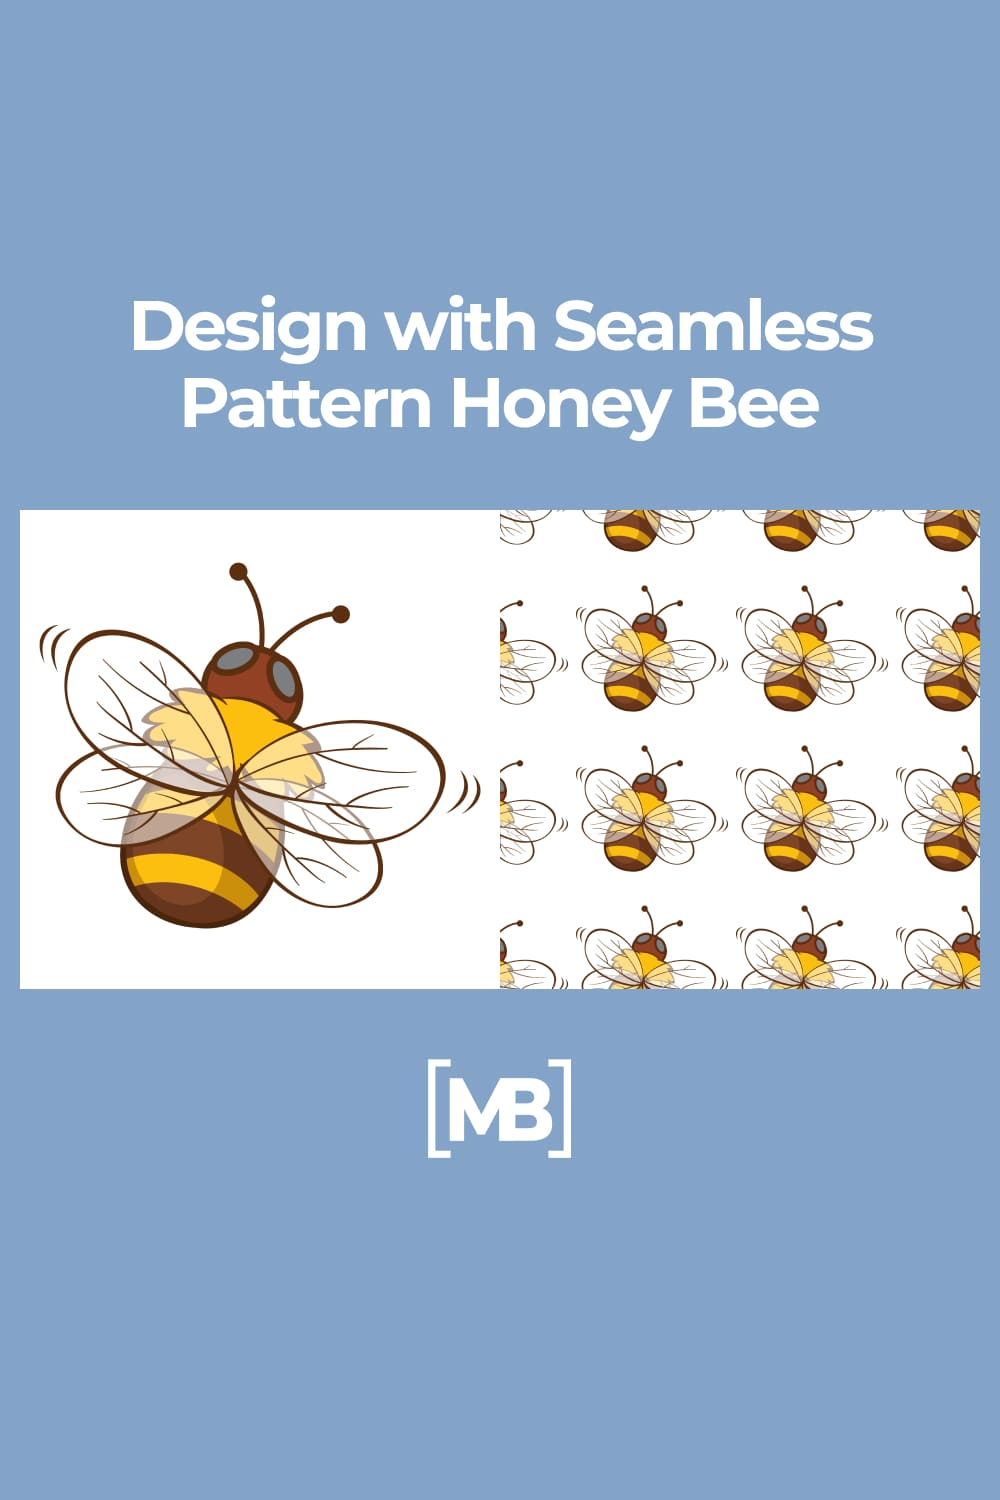 Design with Seamless Pattern Honey Bee.